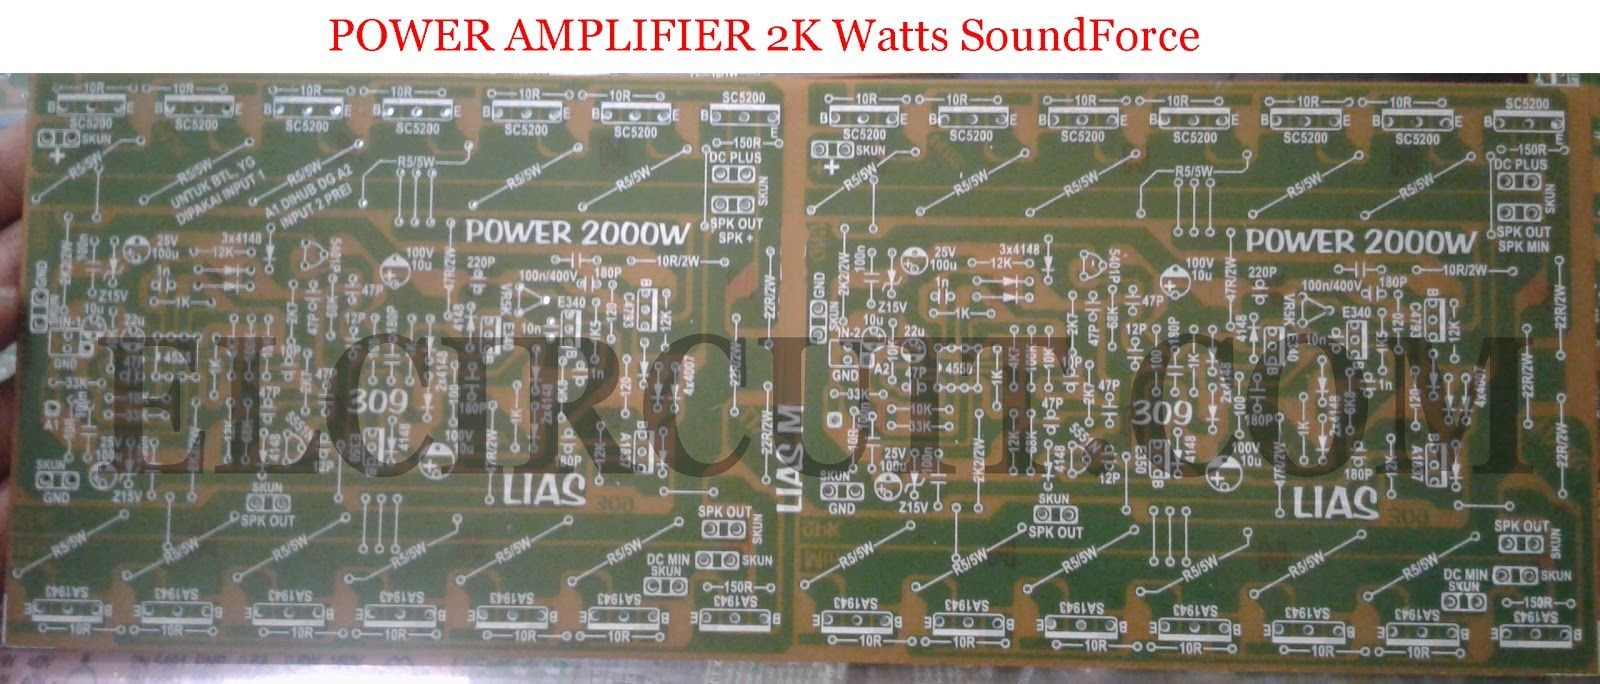 2000w power amplifier circuit diagram impco lpg wiring complete pcb layout hubby project design for top and bottom layer